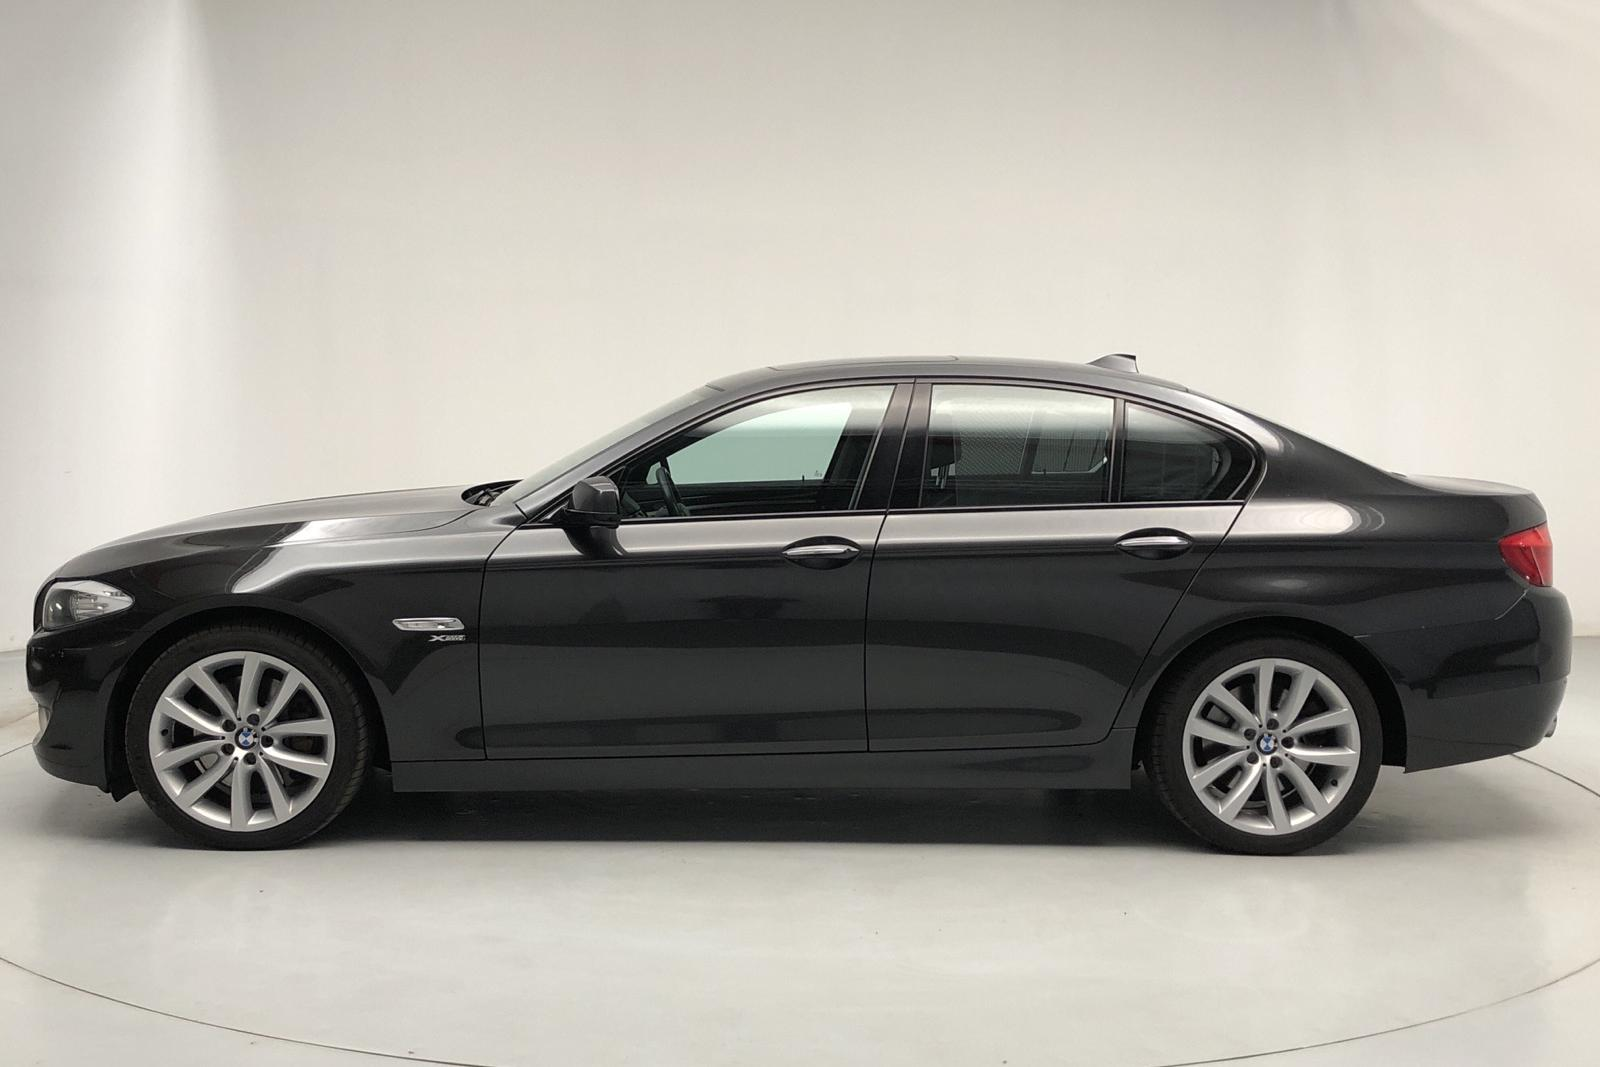 BMW 535d xDrive Sedan, F10 (313hk) - 195 000 km - Automatic - Dark Grey - 2012